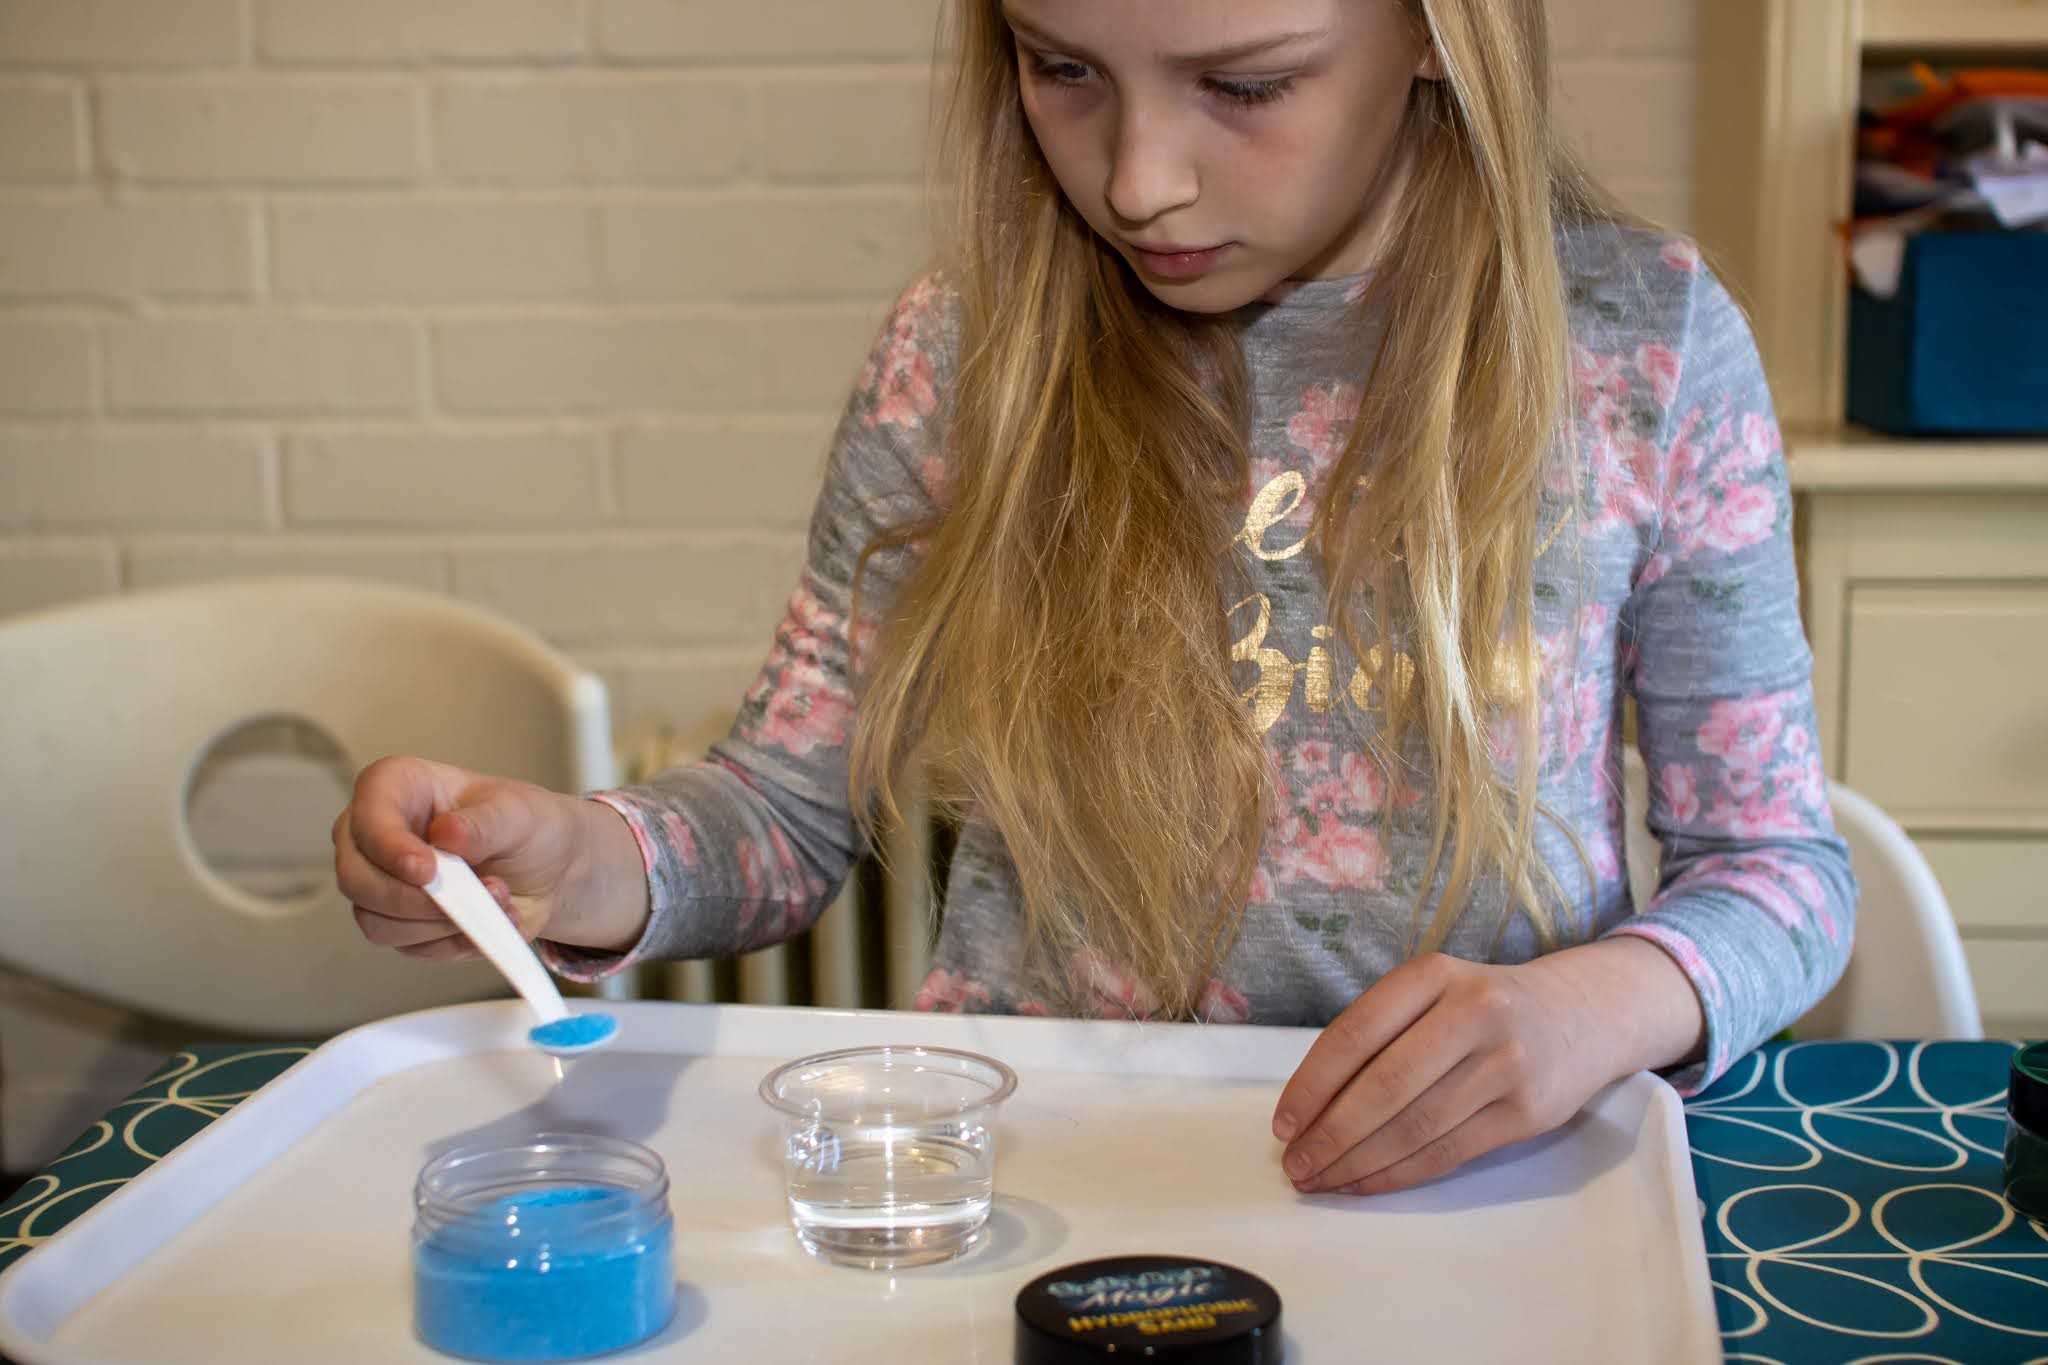 A 9 year old spooning blue hydrophobic sand into a pot of water with total concentration on her face